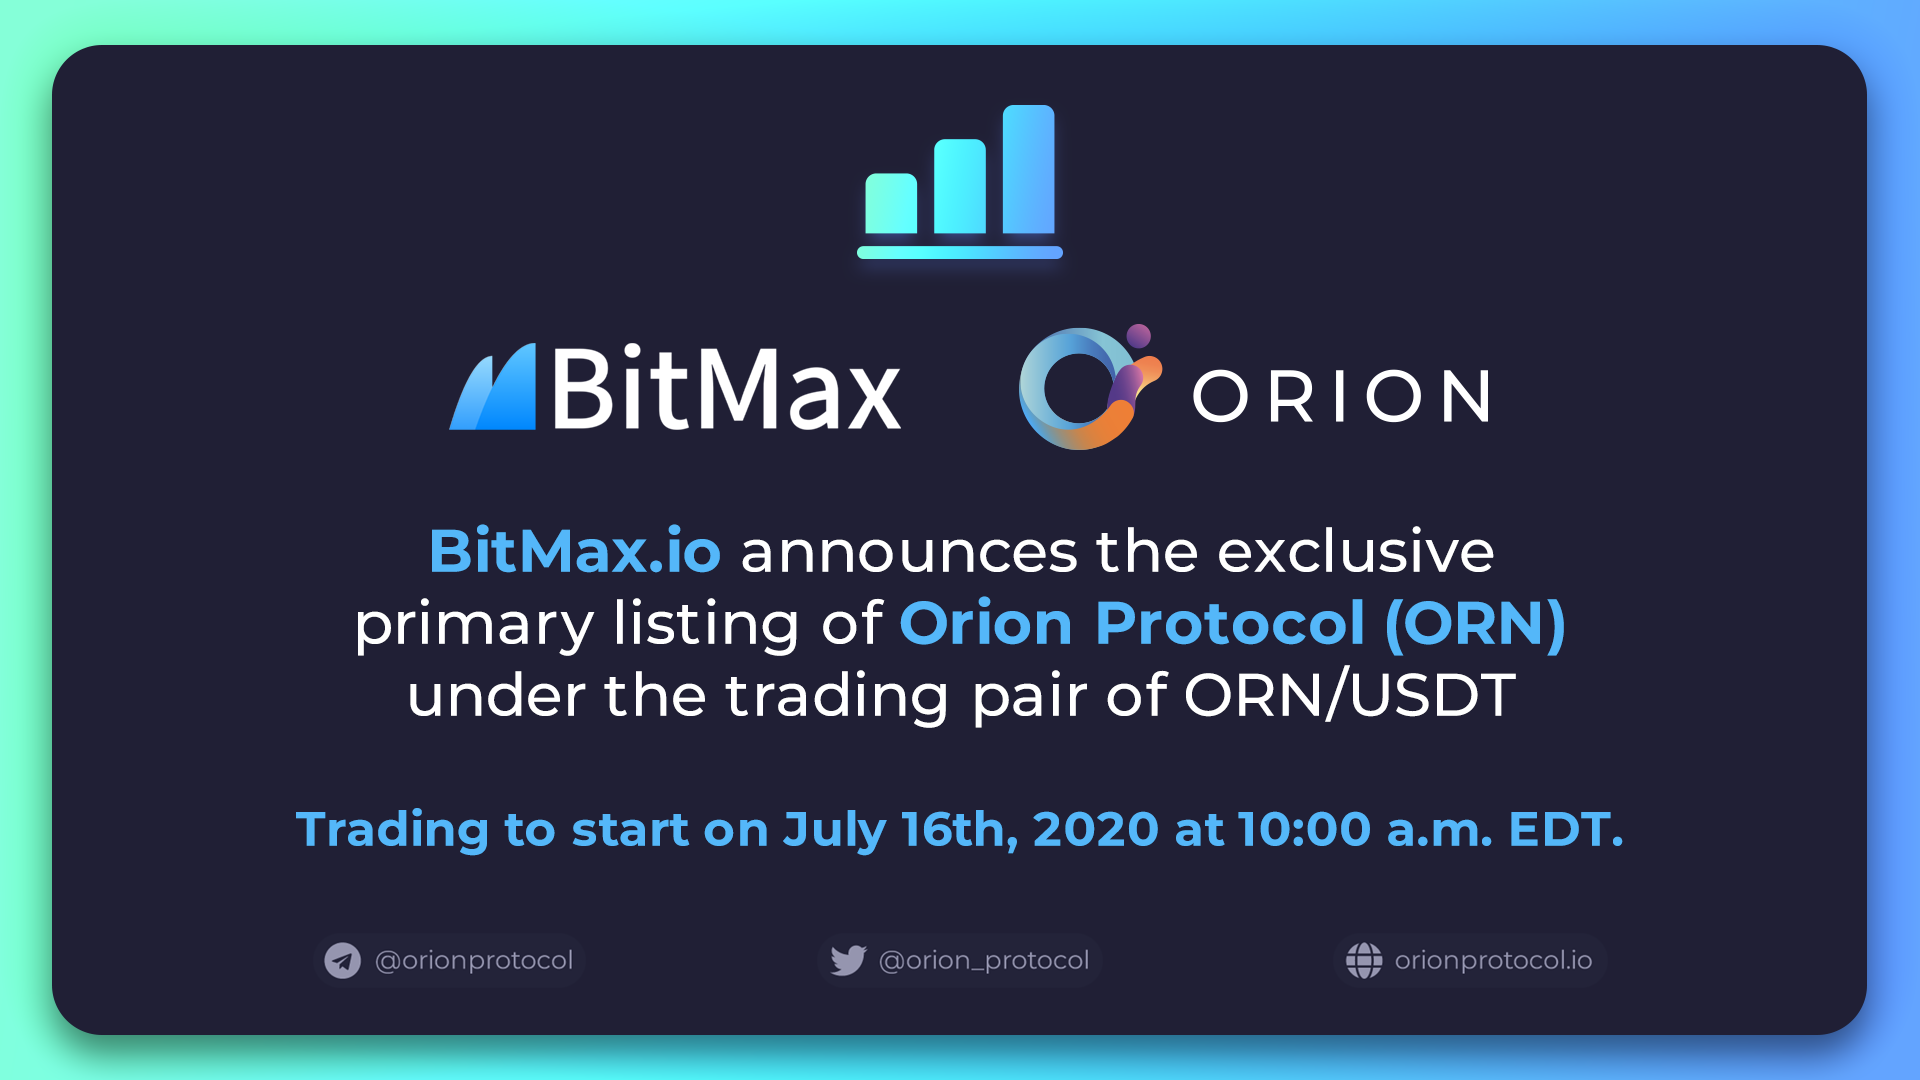 ORN's Primary Listing on BitMax